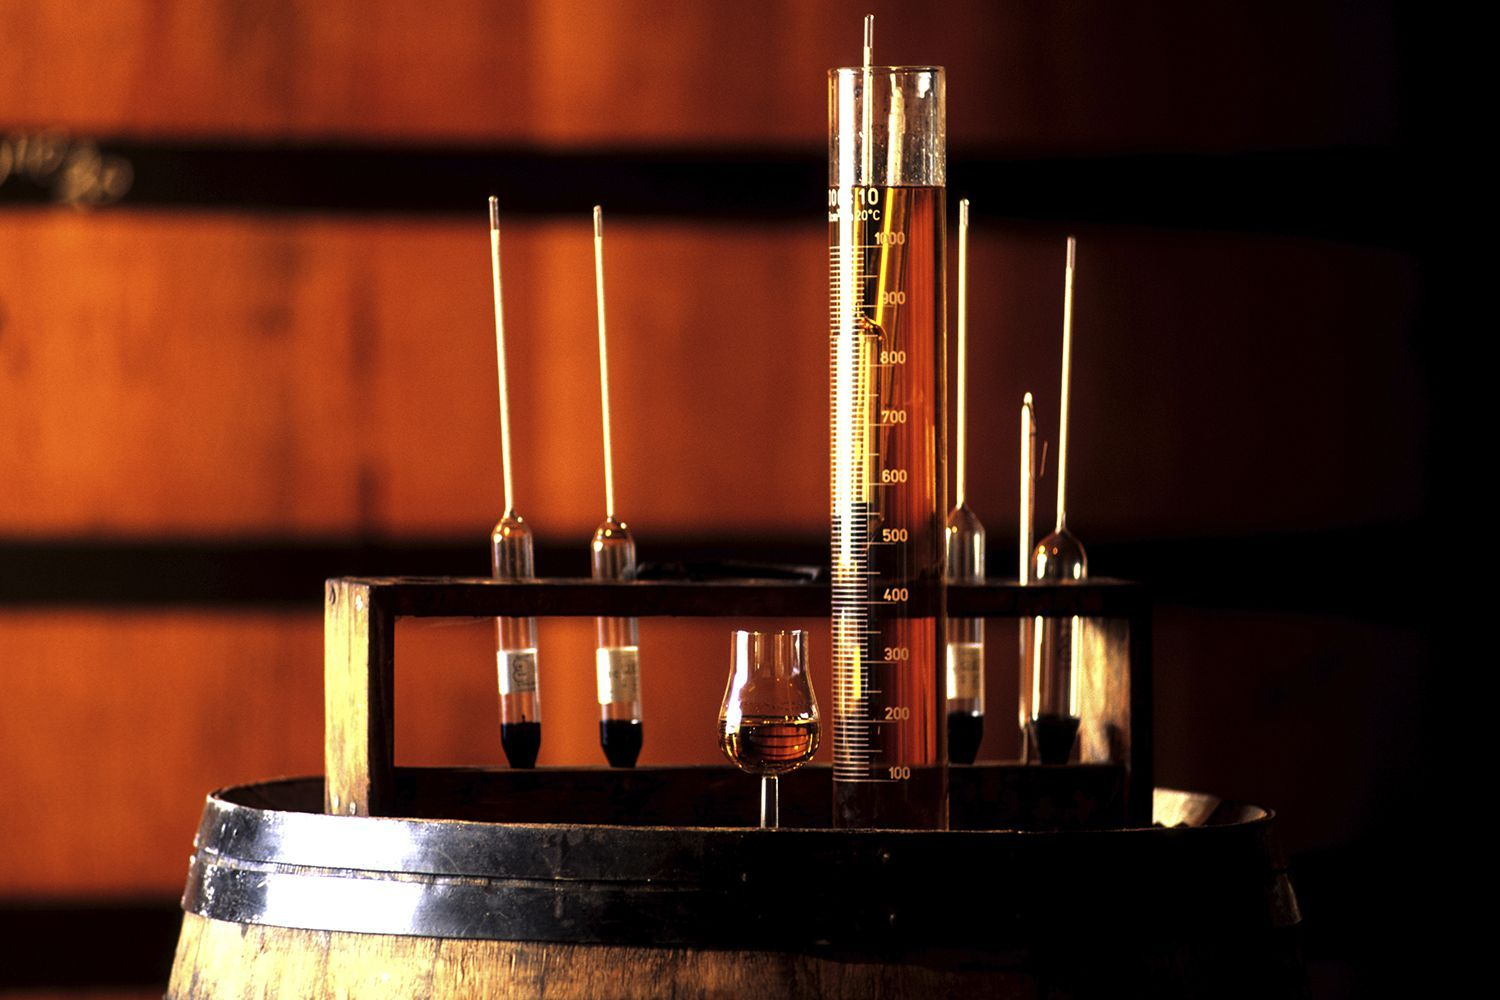 The 6 Types Of Base Distilled Spirits Distilled Spirit Distilling Alcohol Liquor